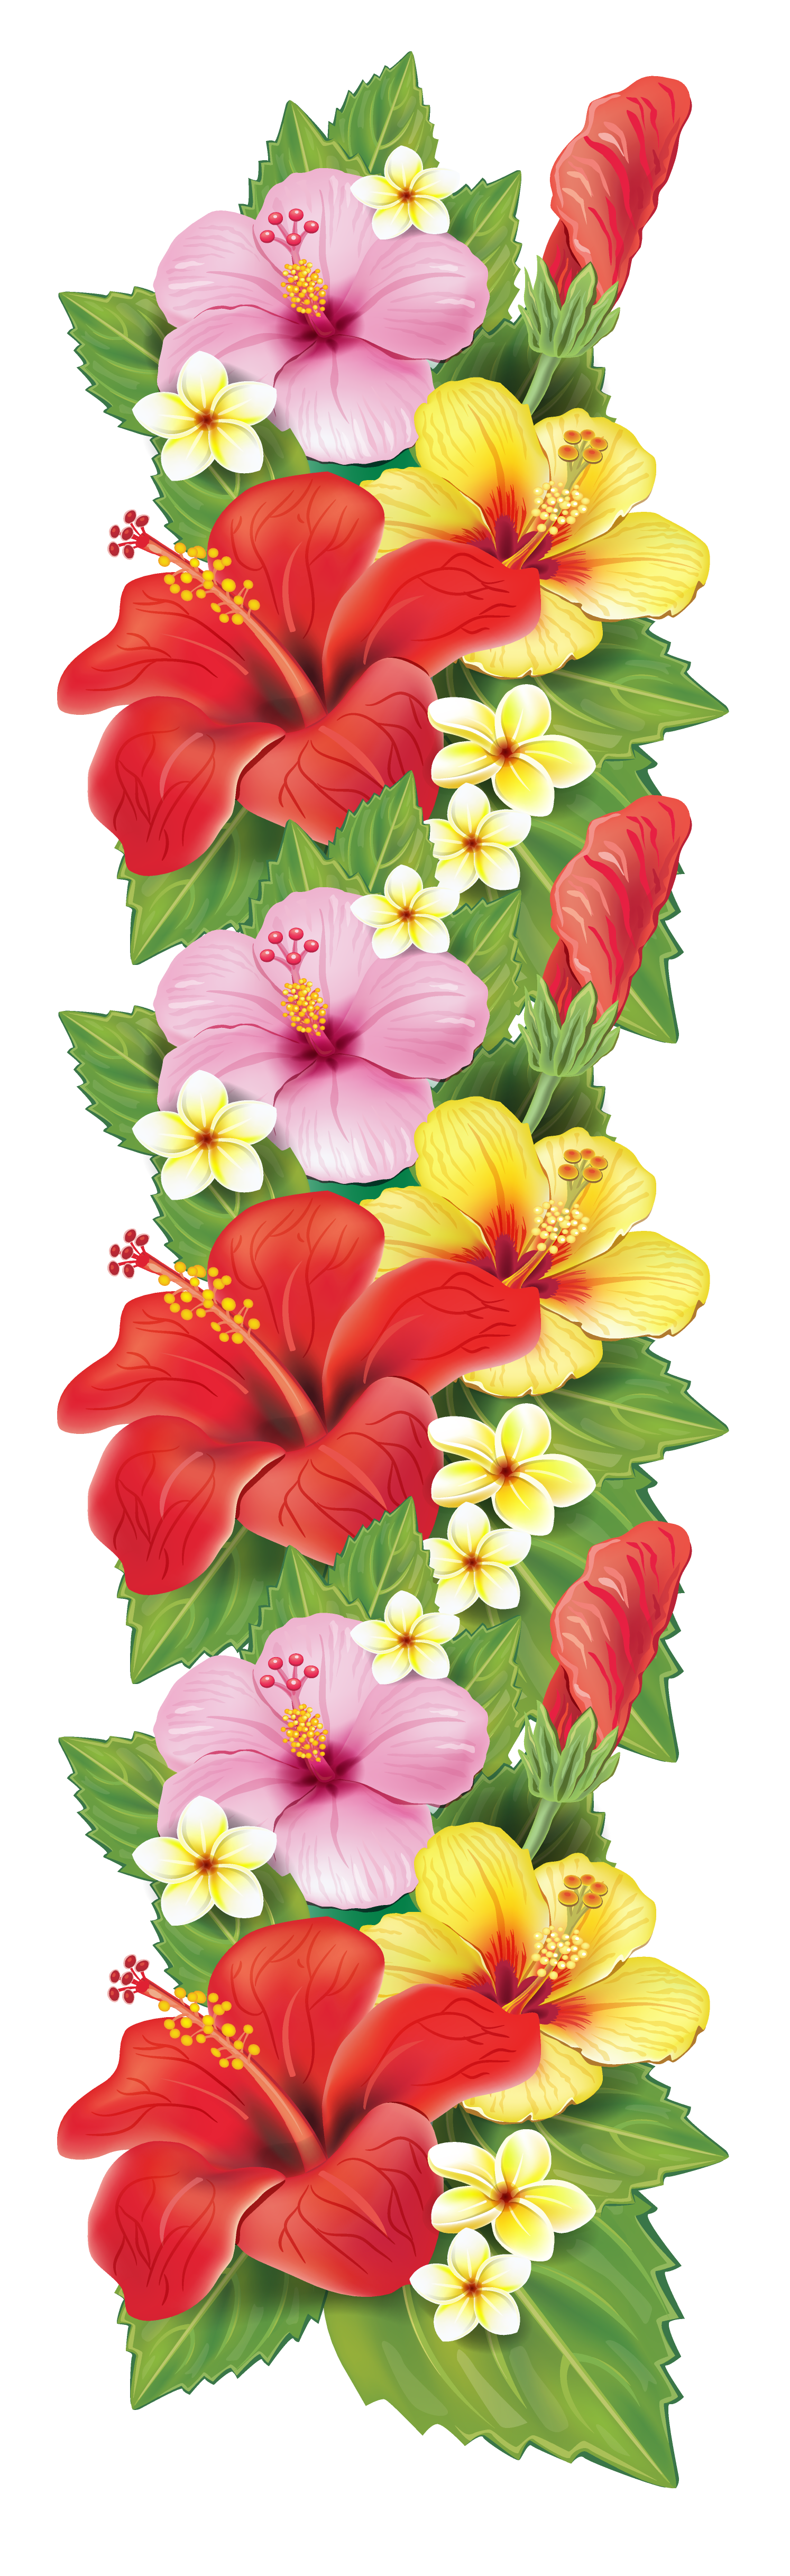 Exotic flowers decoration png. Hibiscus clipart green hibiscus flower